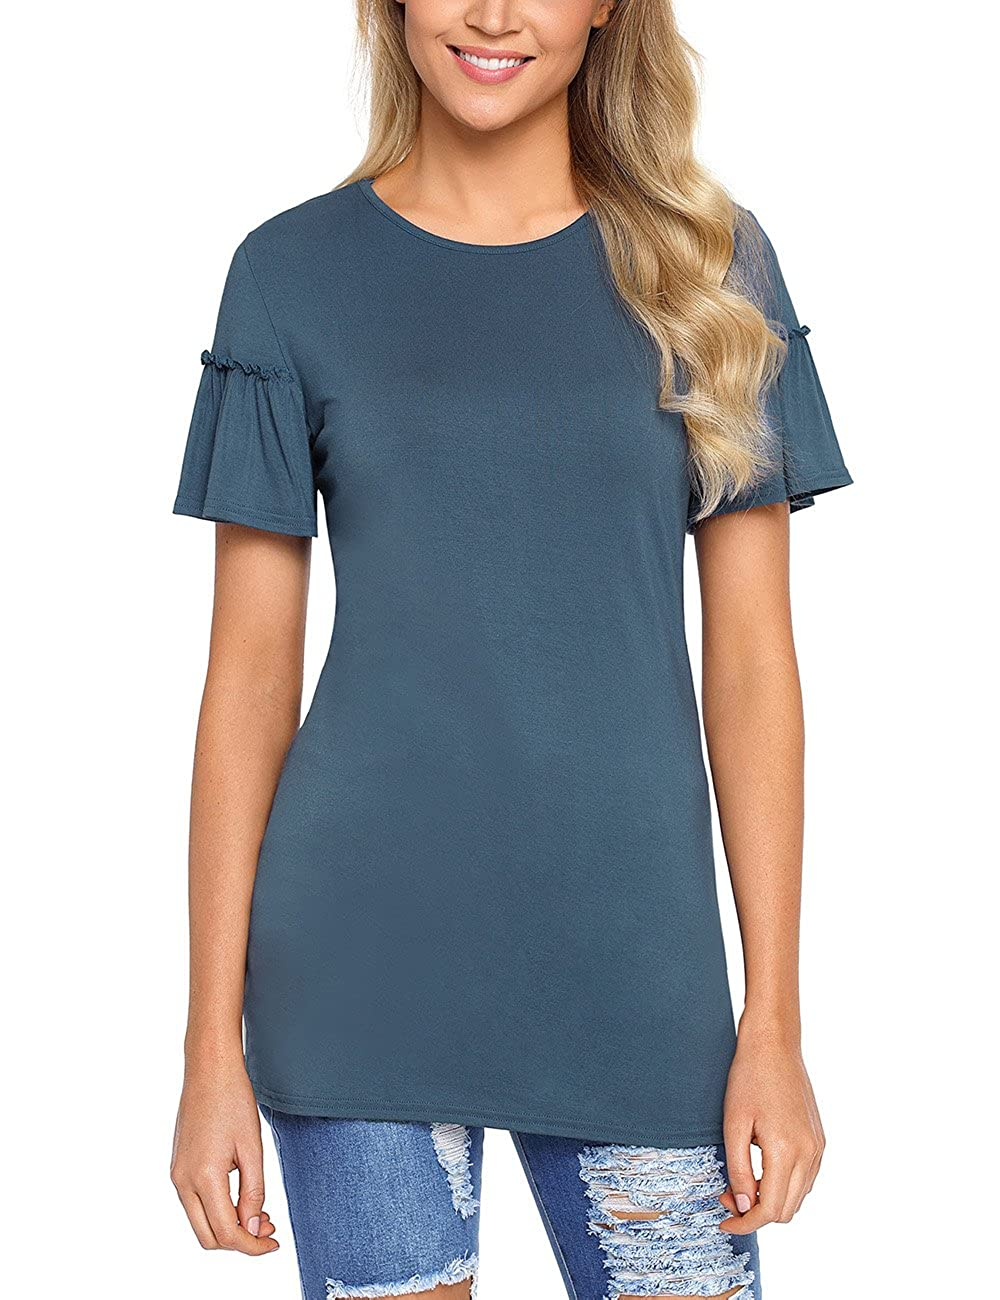 133149cf4 Features: short sleeves, solid plain style, crew round neckline, flowy  ruffle sleeve and the perfect length for comfort and style.